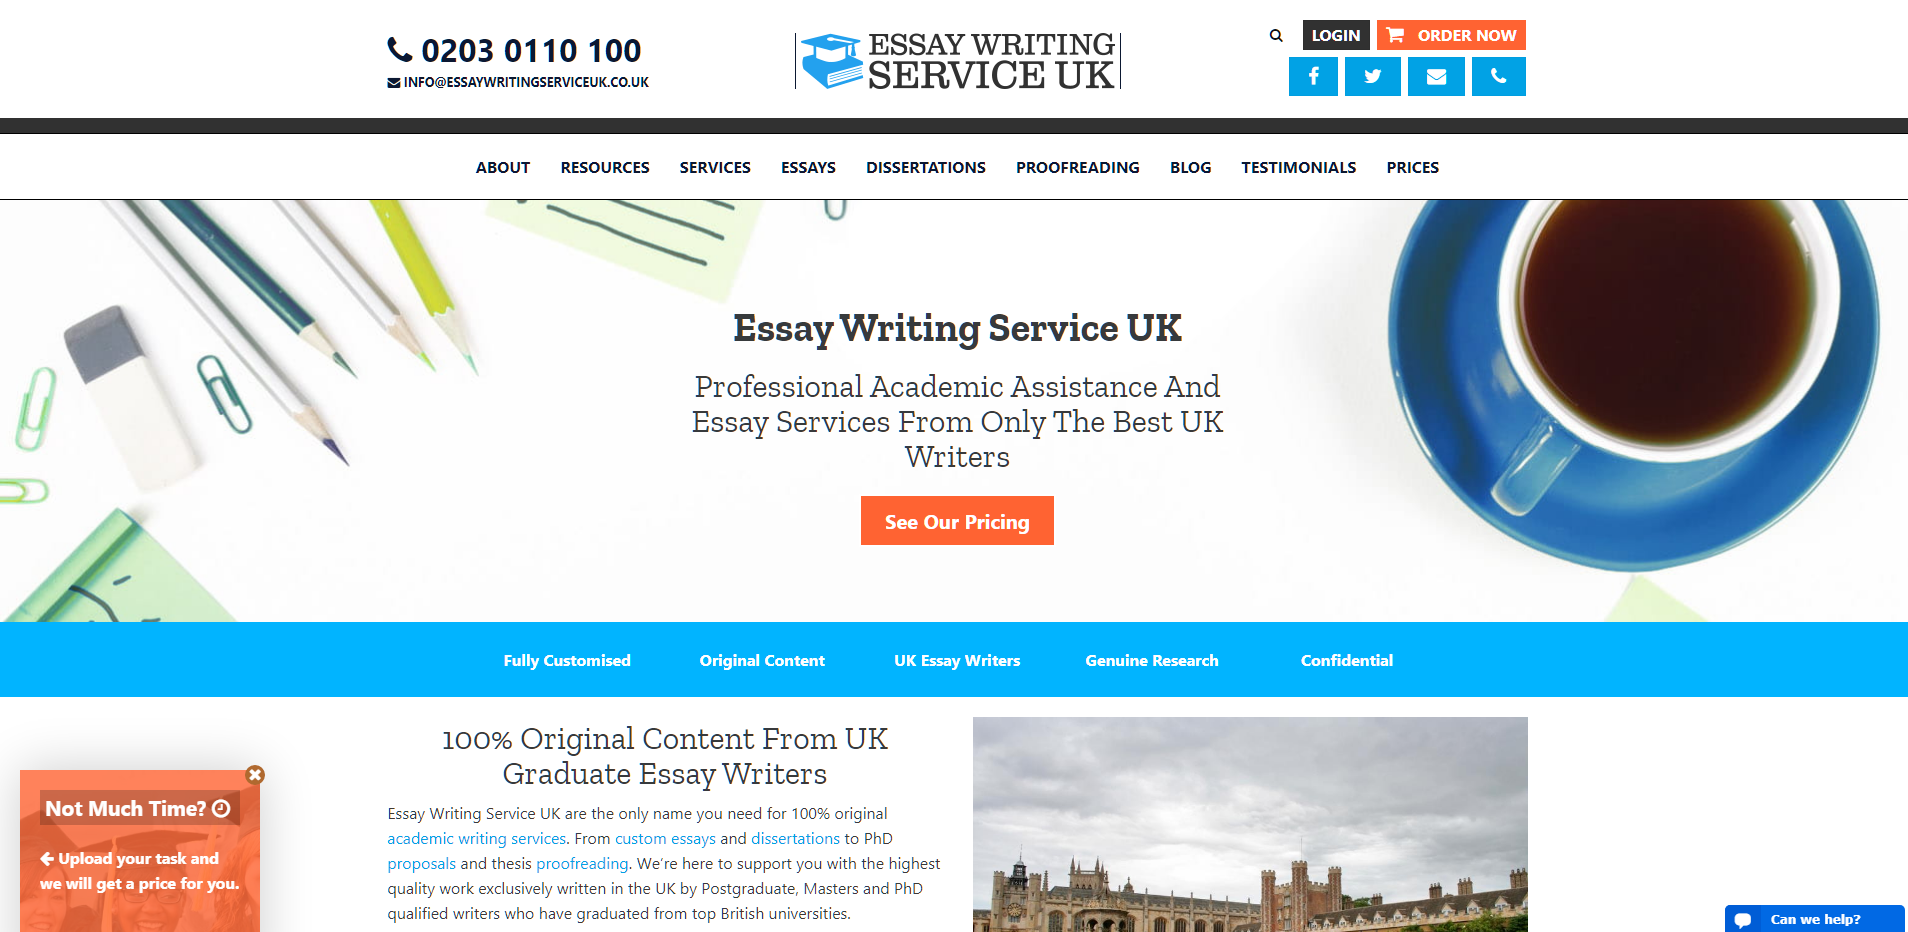 EssayWritingServiceUK.co.uk